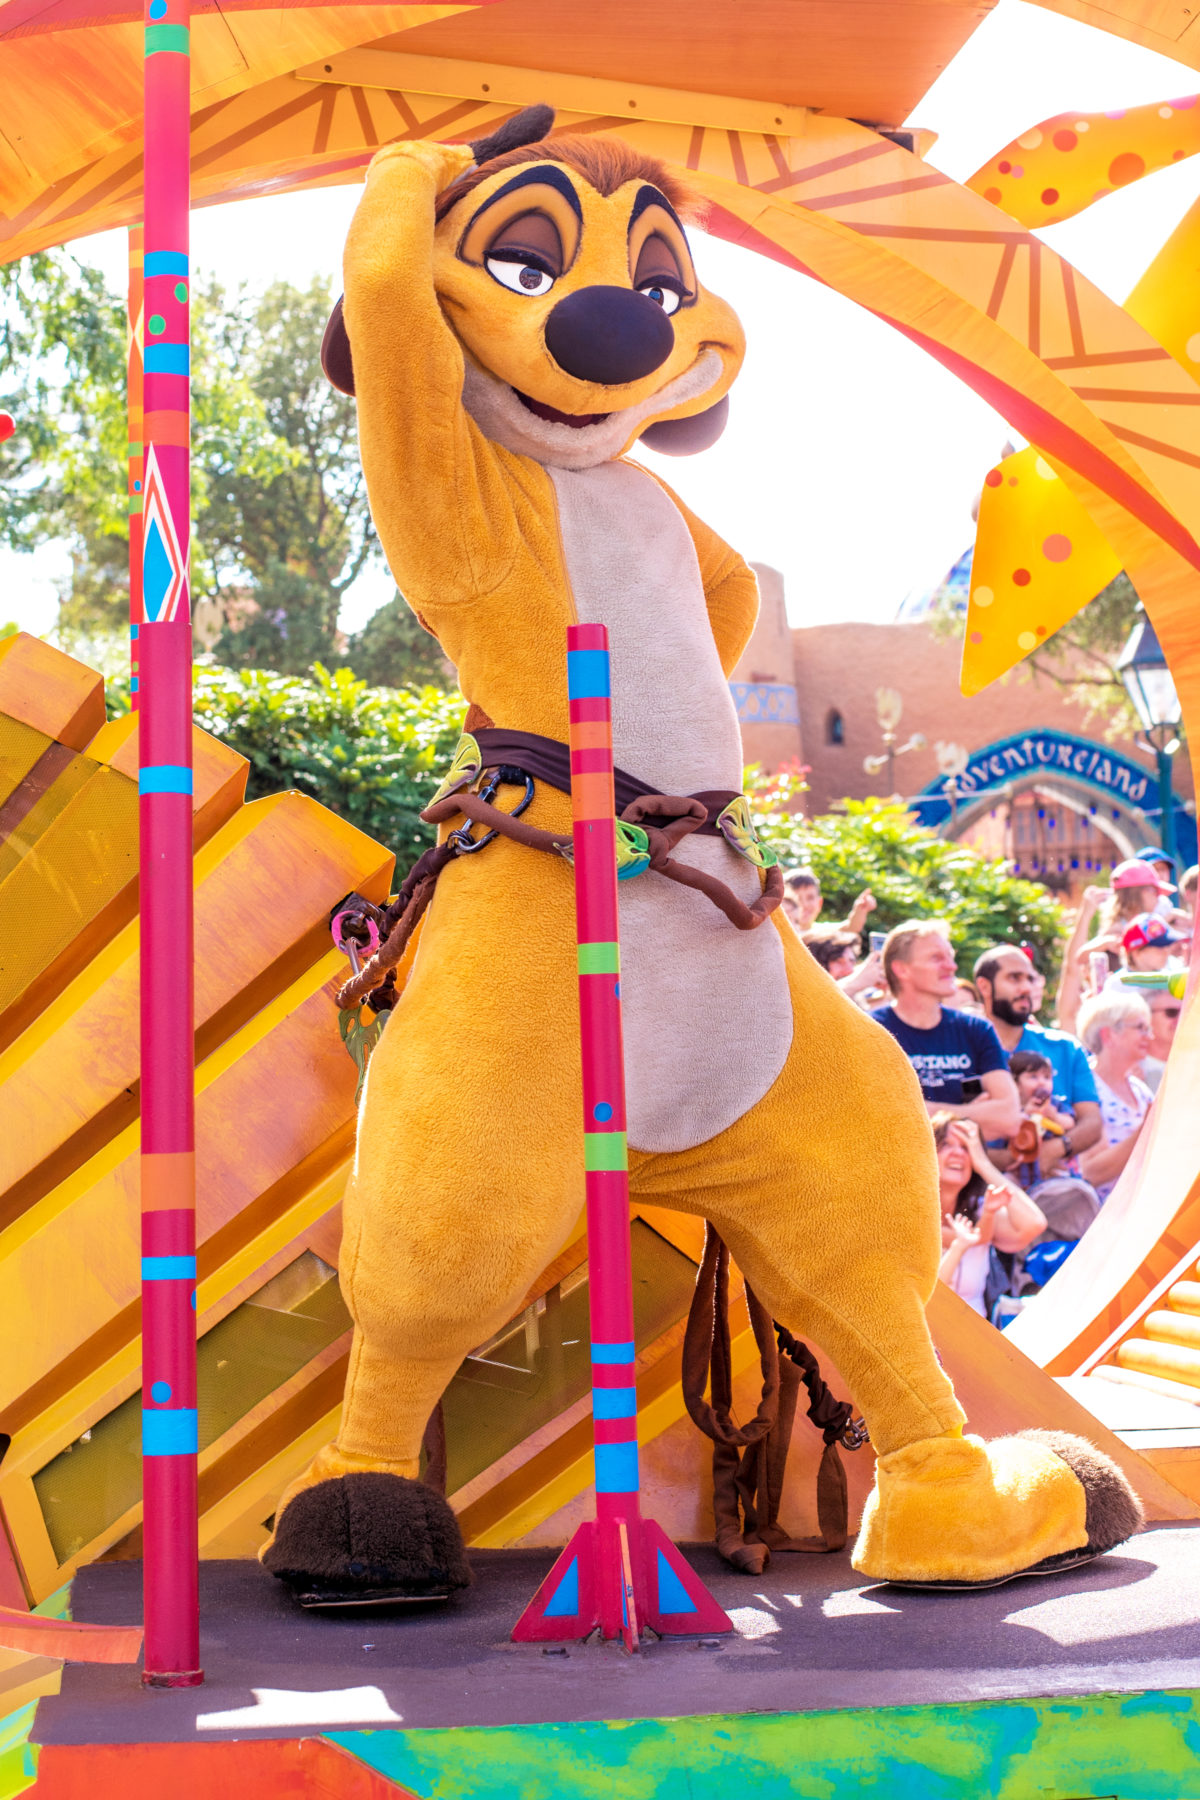 timon lion king parade disneyland paris